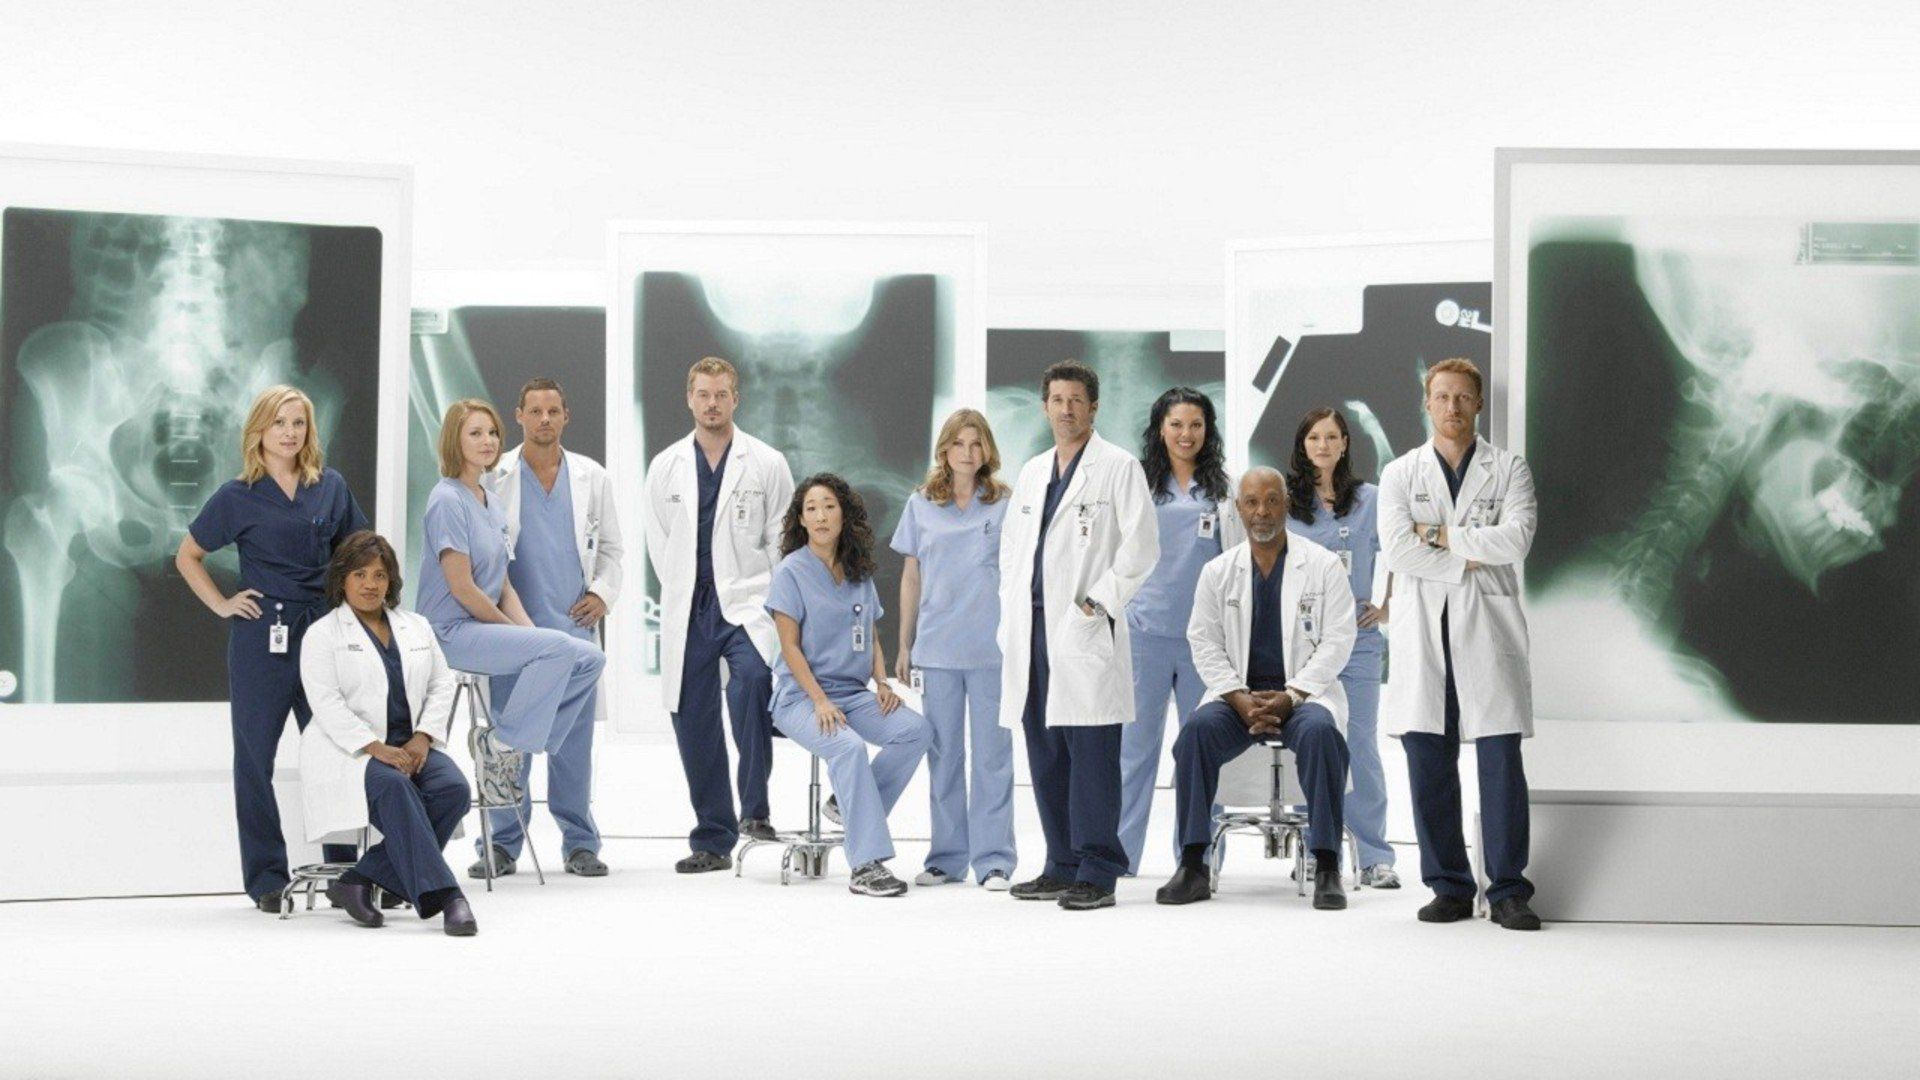 ッFULL~Watch!] - Grey\'s Anatomy Season 14 Episode 2 : Get off on the ...